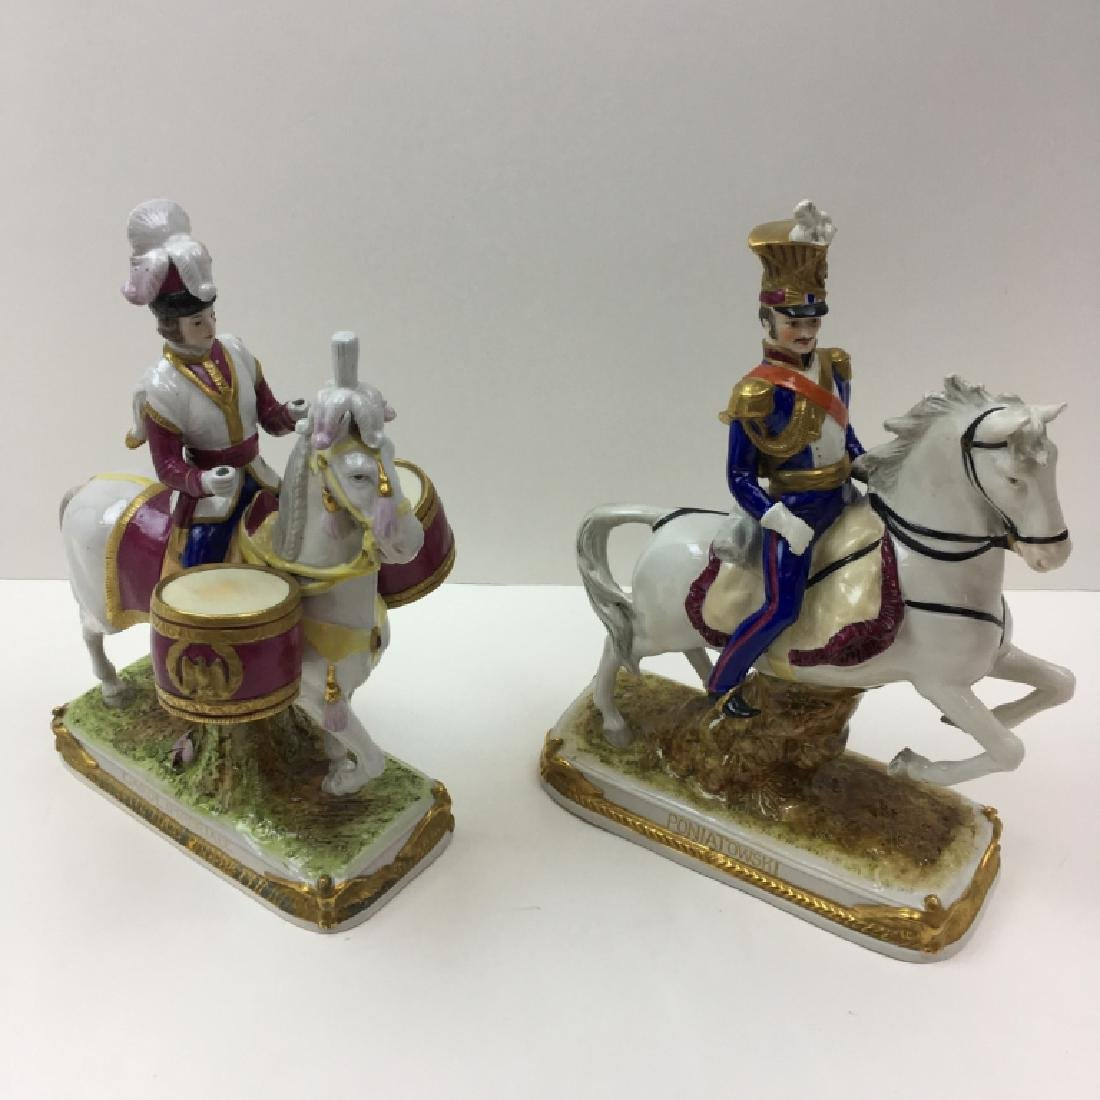 2 HAND PAINTED PORCELAIN FIGURINES